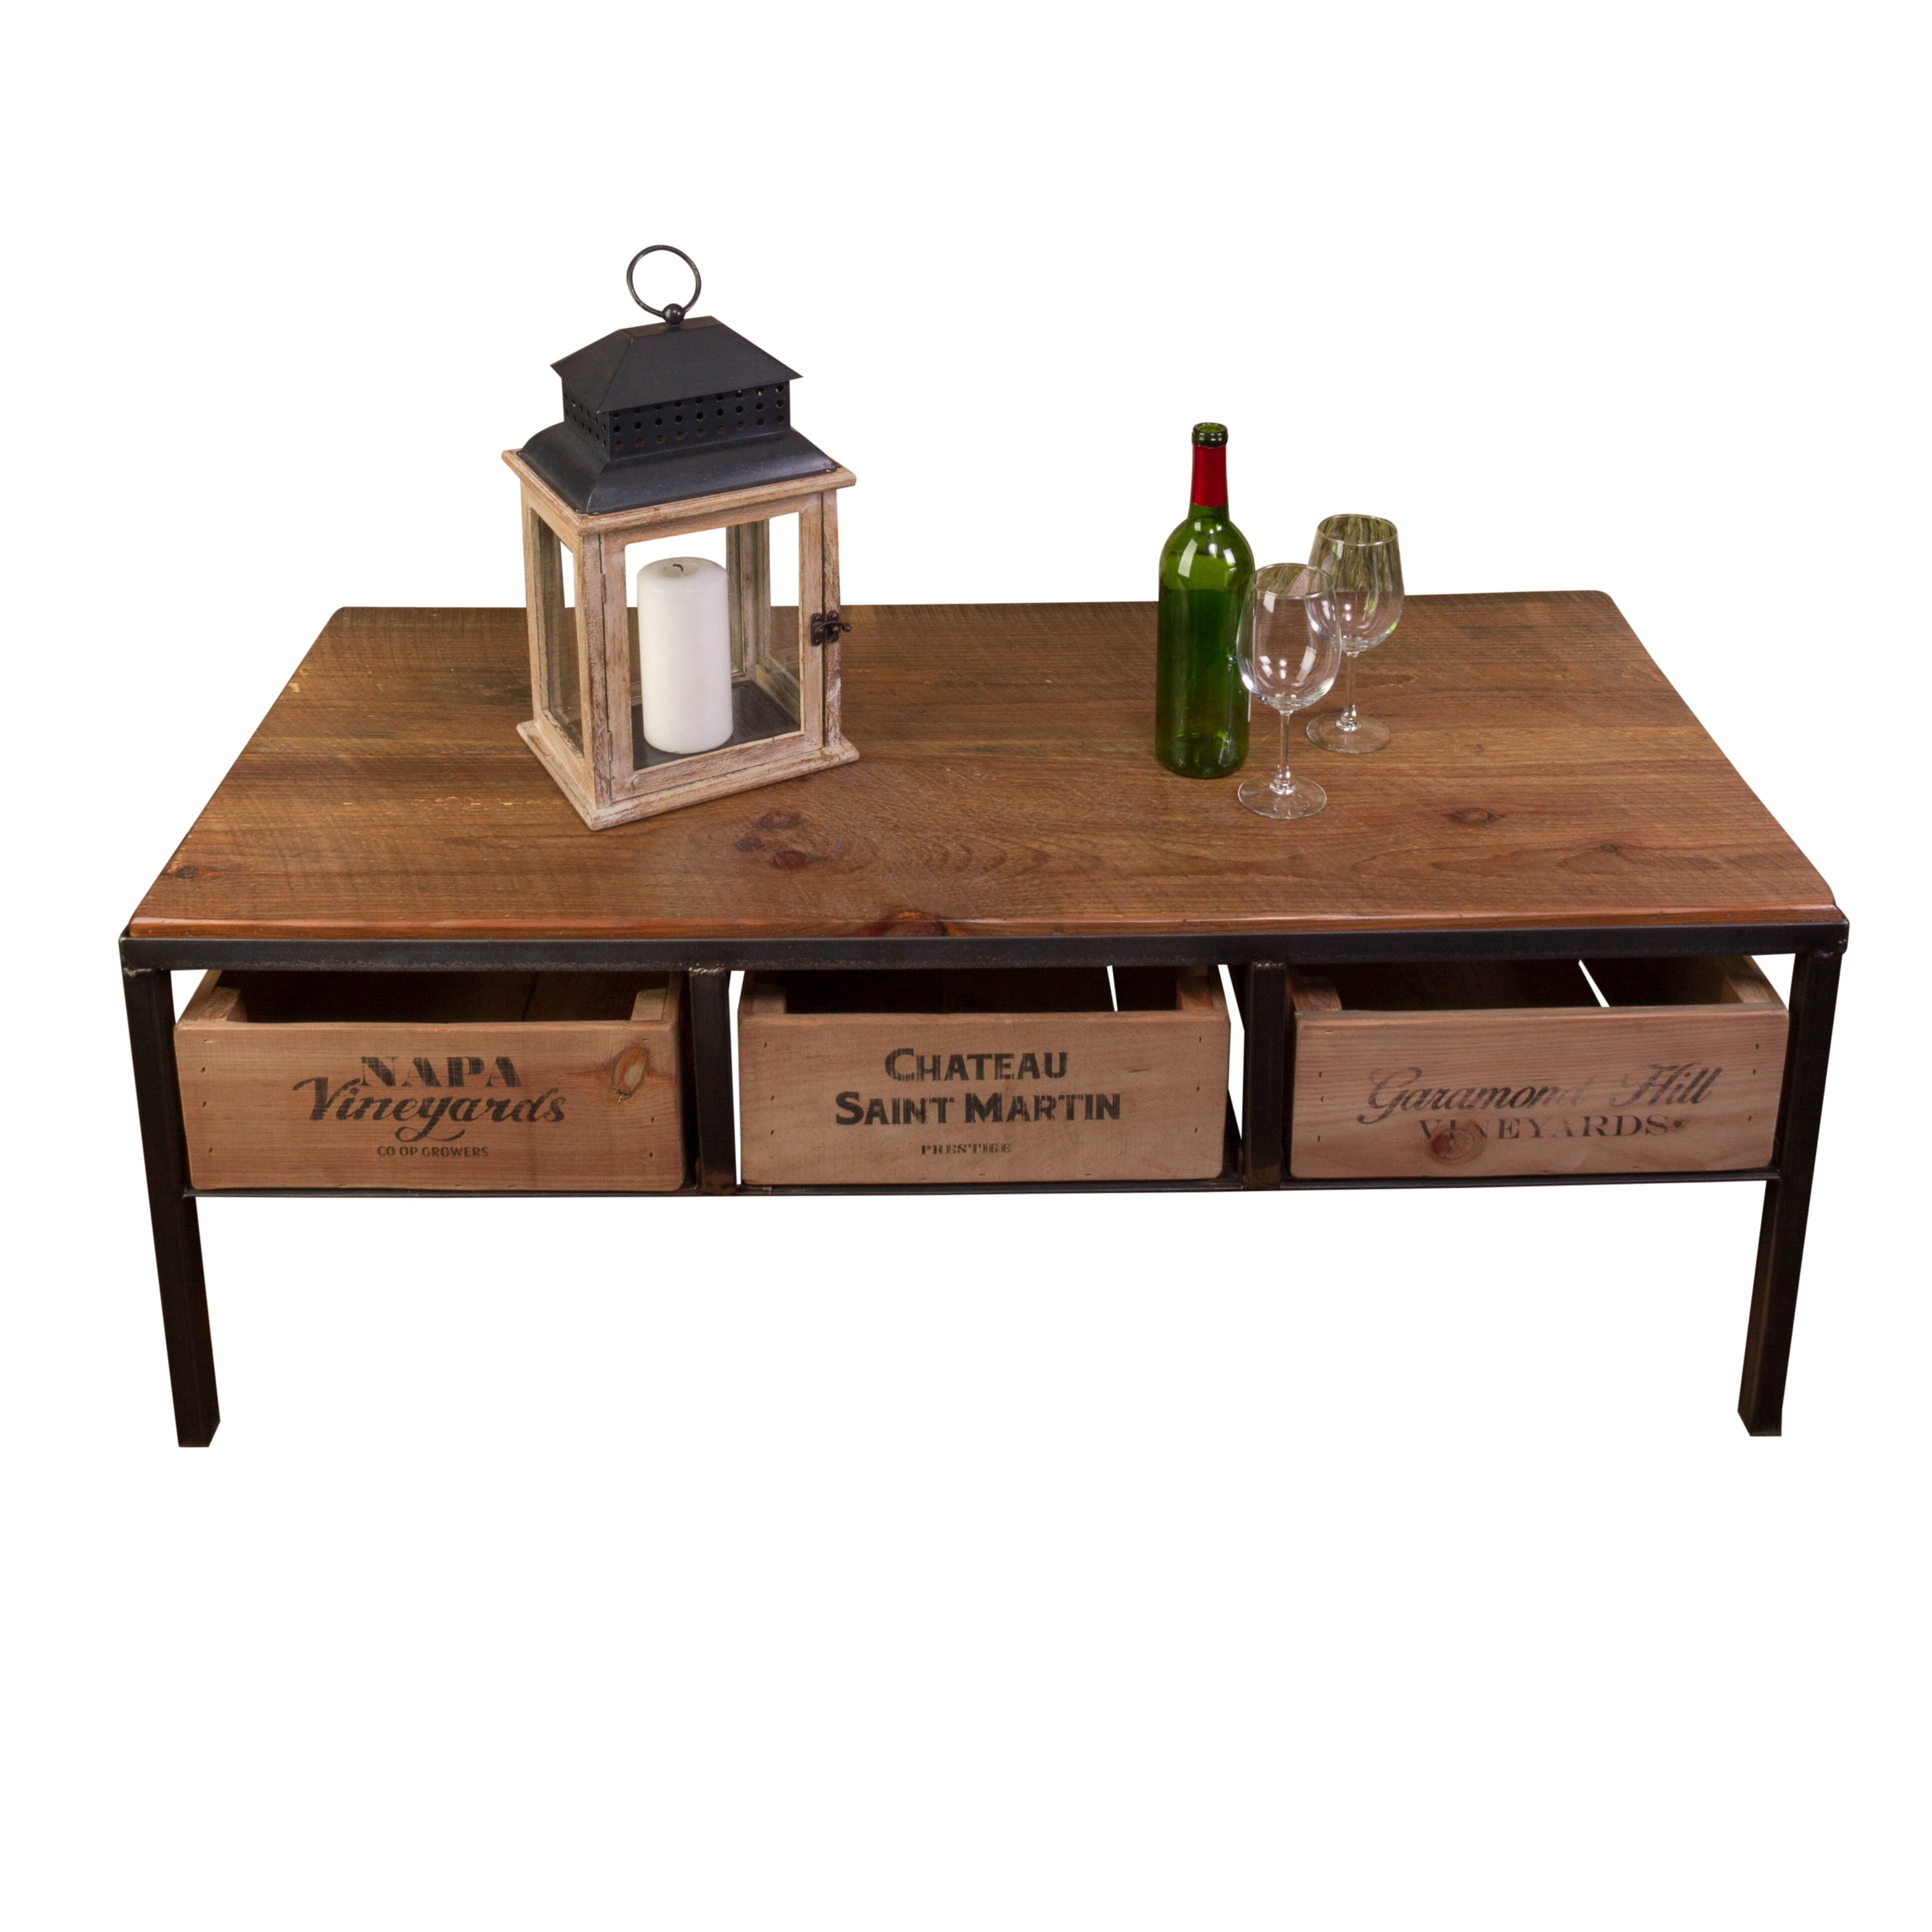 Vino vintage coffee table wayfair for Vintage coffee table